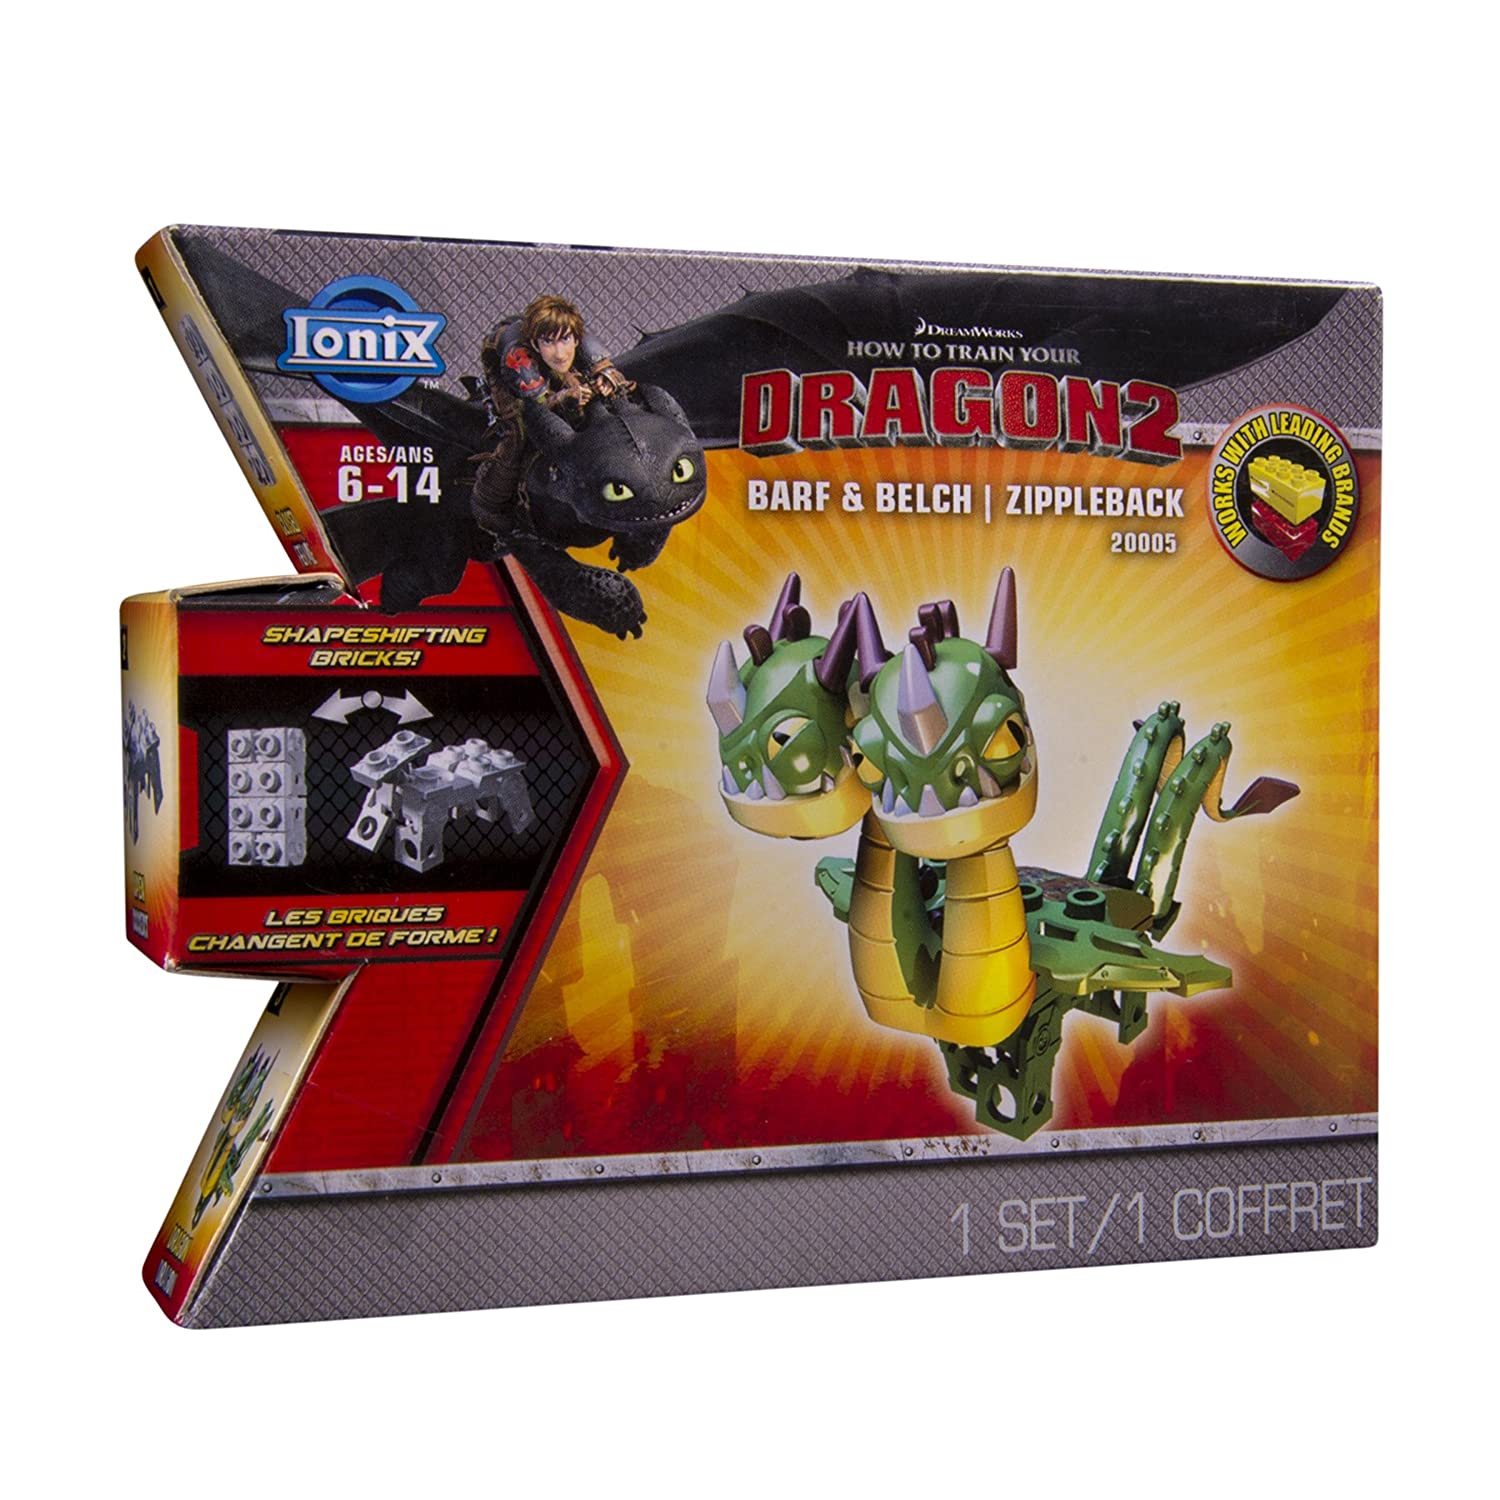 Amazon ionix dragons how to train your dragon 2 barf and belch amazon ionix dragons how to train your dragon 2 barf and belch zippleback 20005 figure toys games ccuart Choice Image